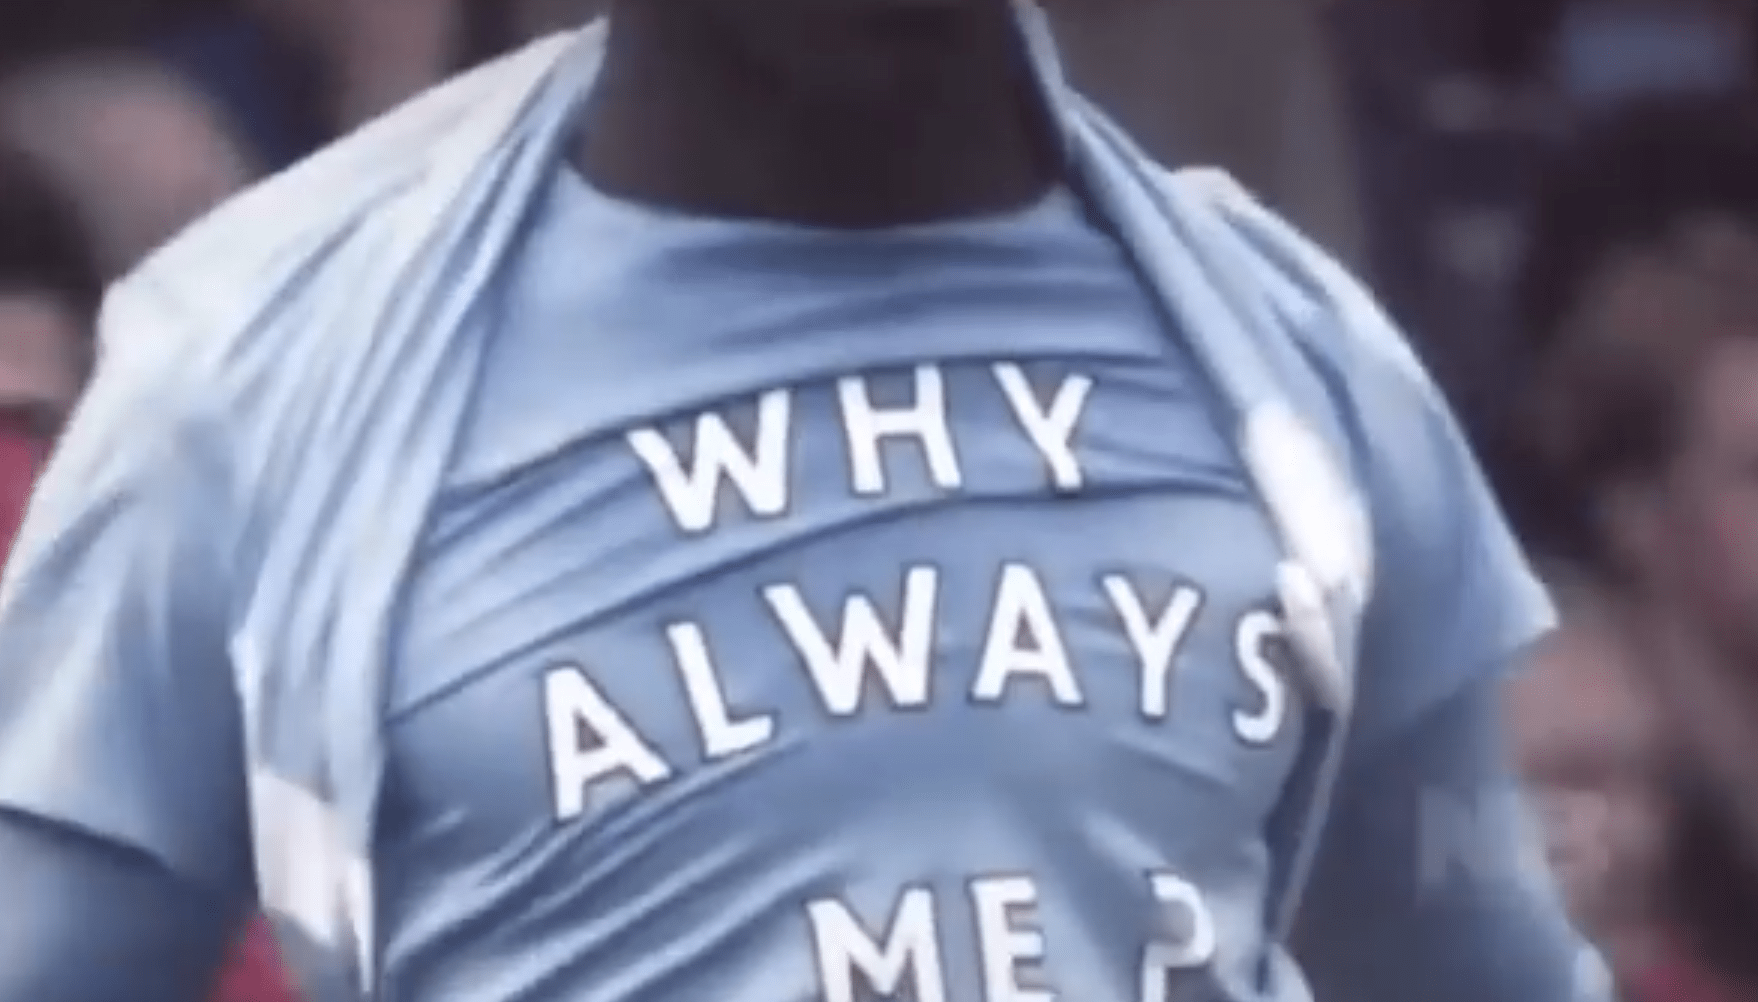 """In 2011 he unveiled a """"Why Always Me?"""" shirt after scoring a goal against Manchester United. Such shirts have since been banned by FIFA."""